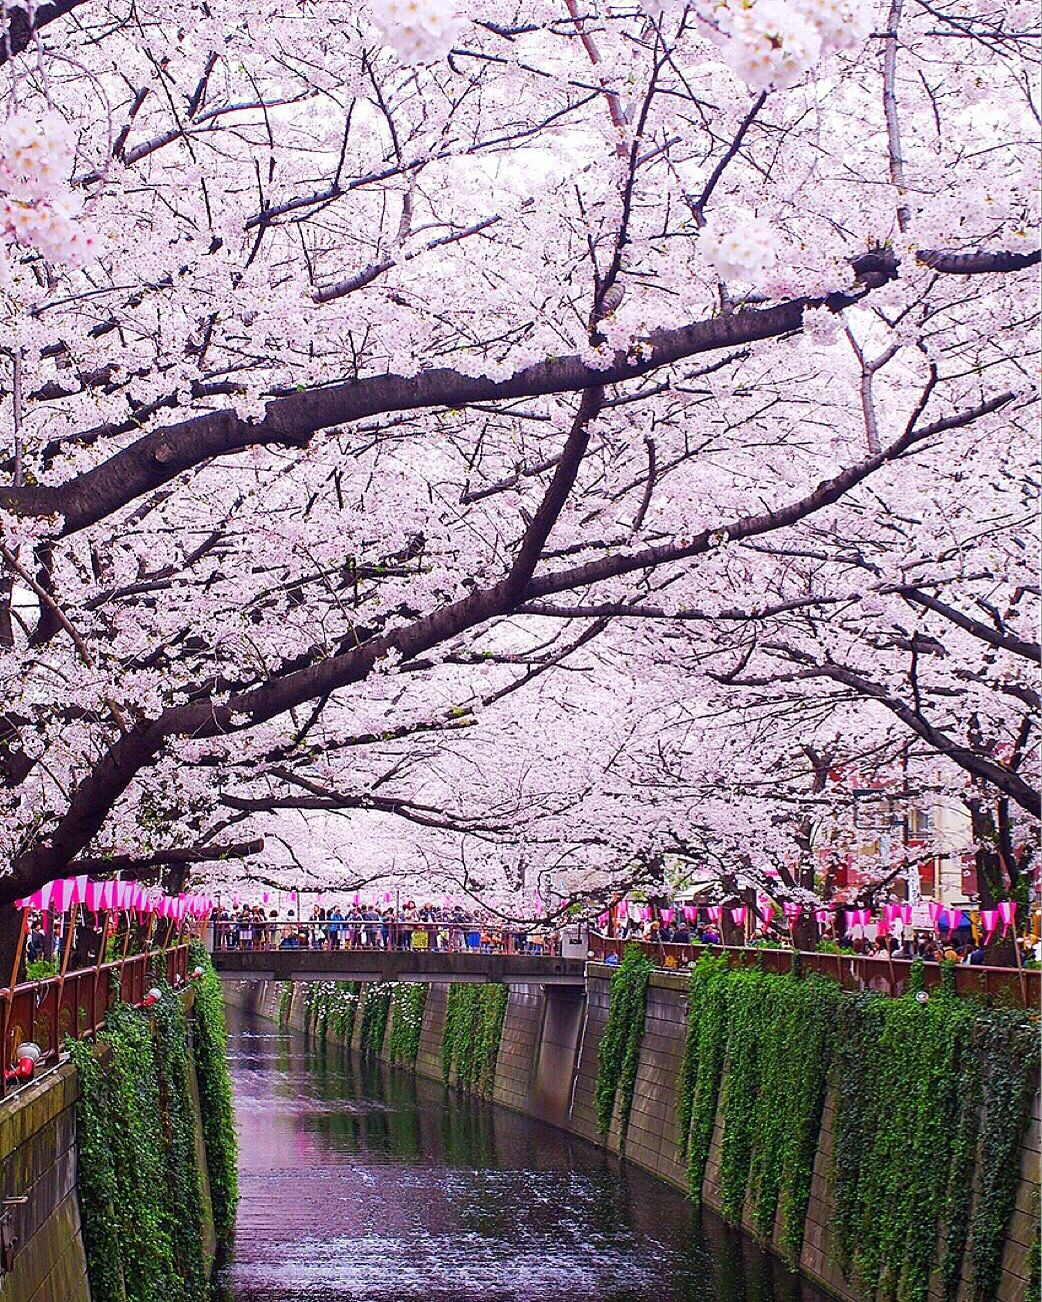 Tokyo, Japan for Cherry Blossoms